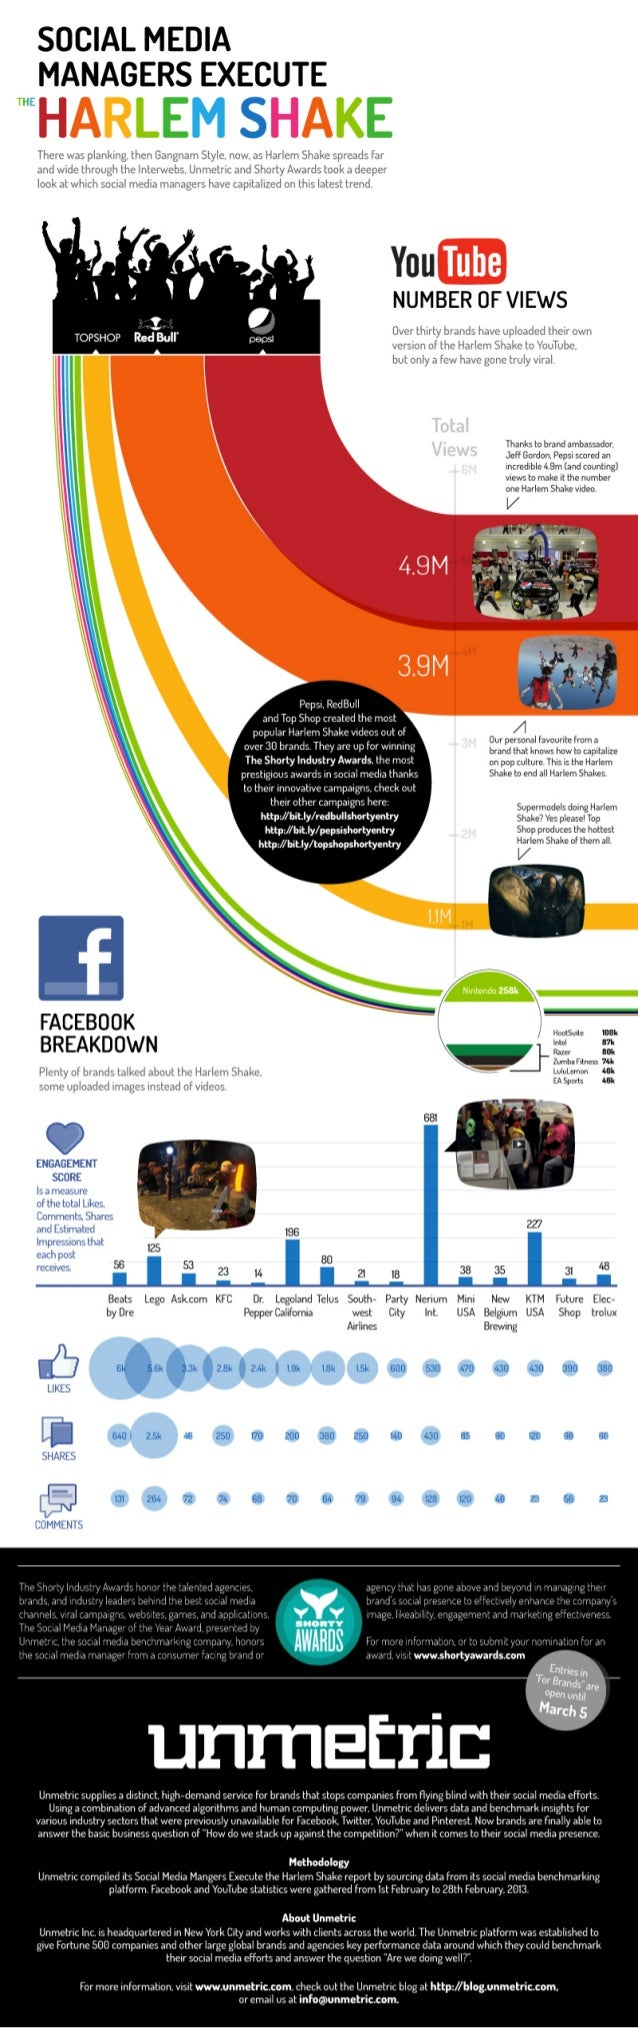 """The Brands that did the """"Harlem Shake"""" on social media by Unmetric"""